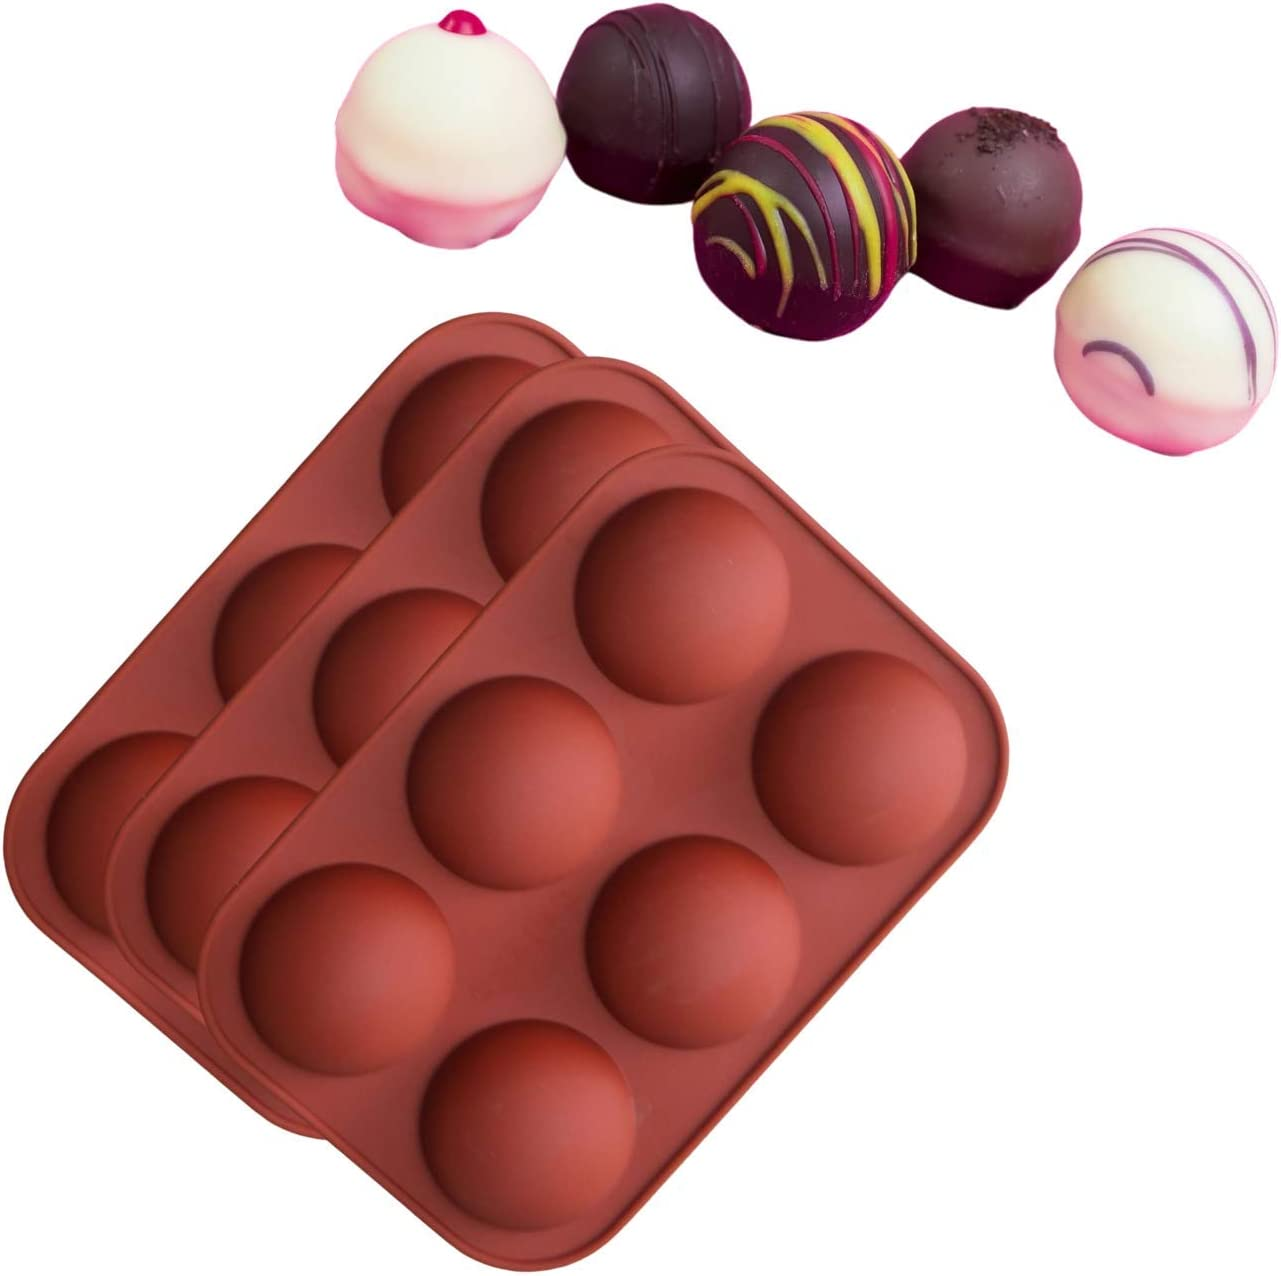 Cake,Chocolate Desserts 6-Cavity Semi Sphere Baking Silicone Molds for Chocolate Bombs with Marshmallows Ice Cream Bombes Dome Mousse Pudding 3Pcs-Brown-1.9Inch 3PCS Hot Chocolate Bomb Mold